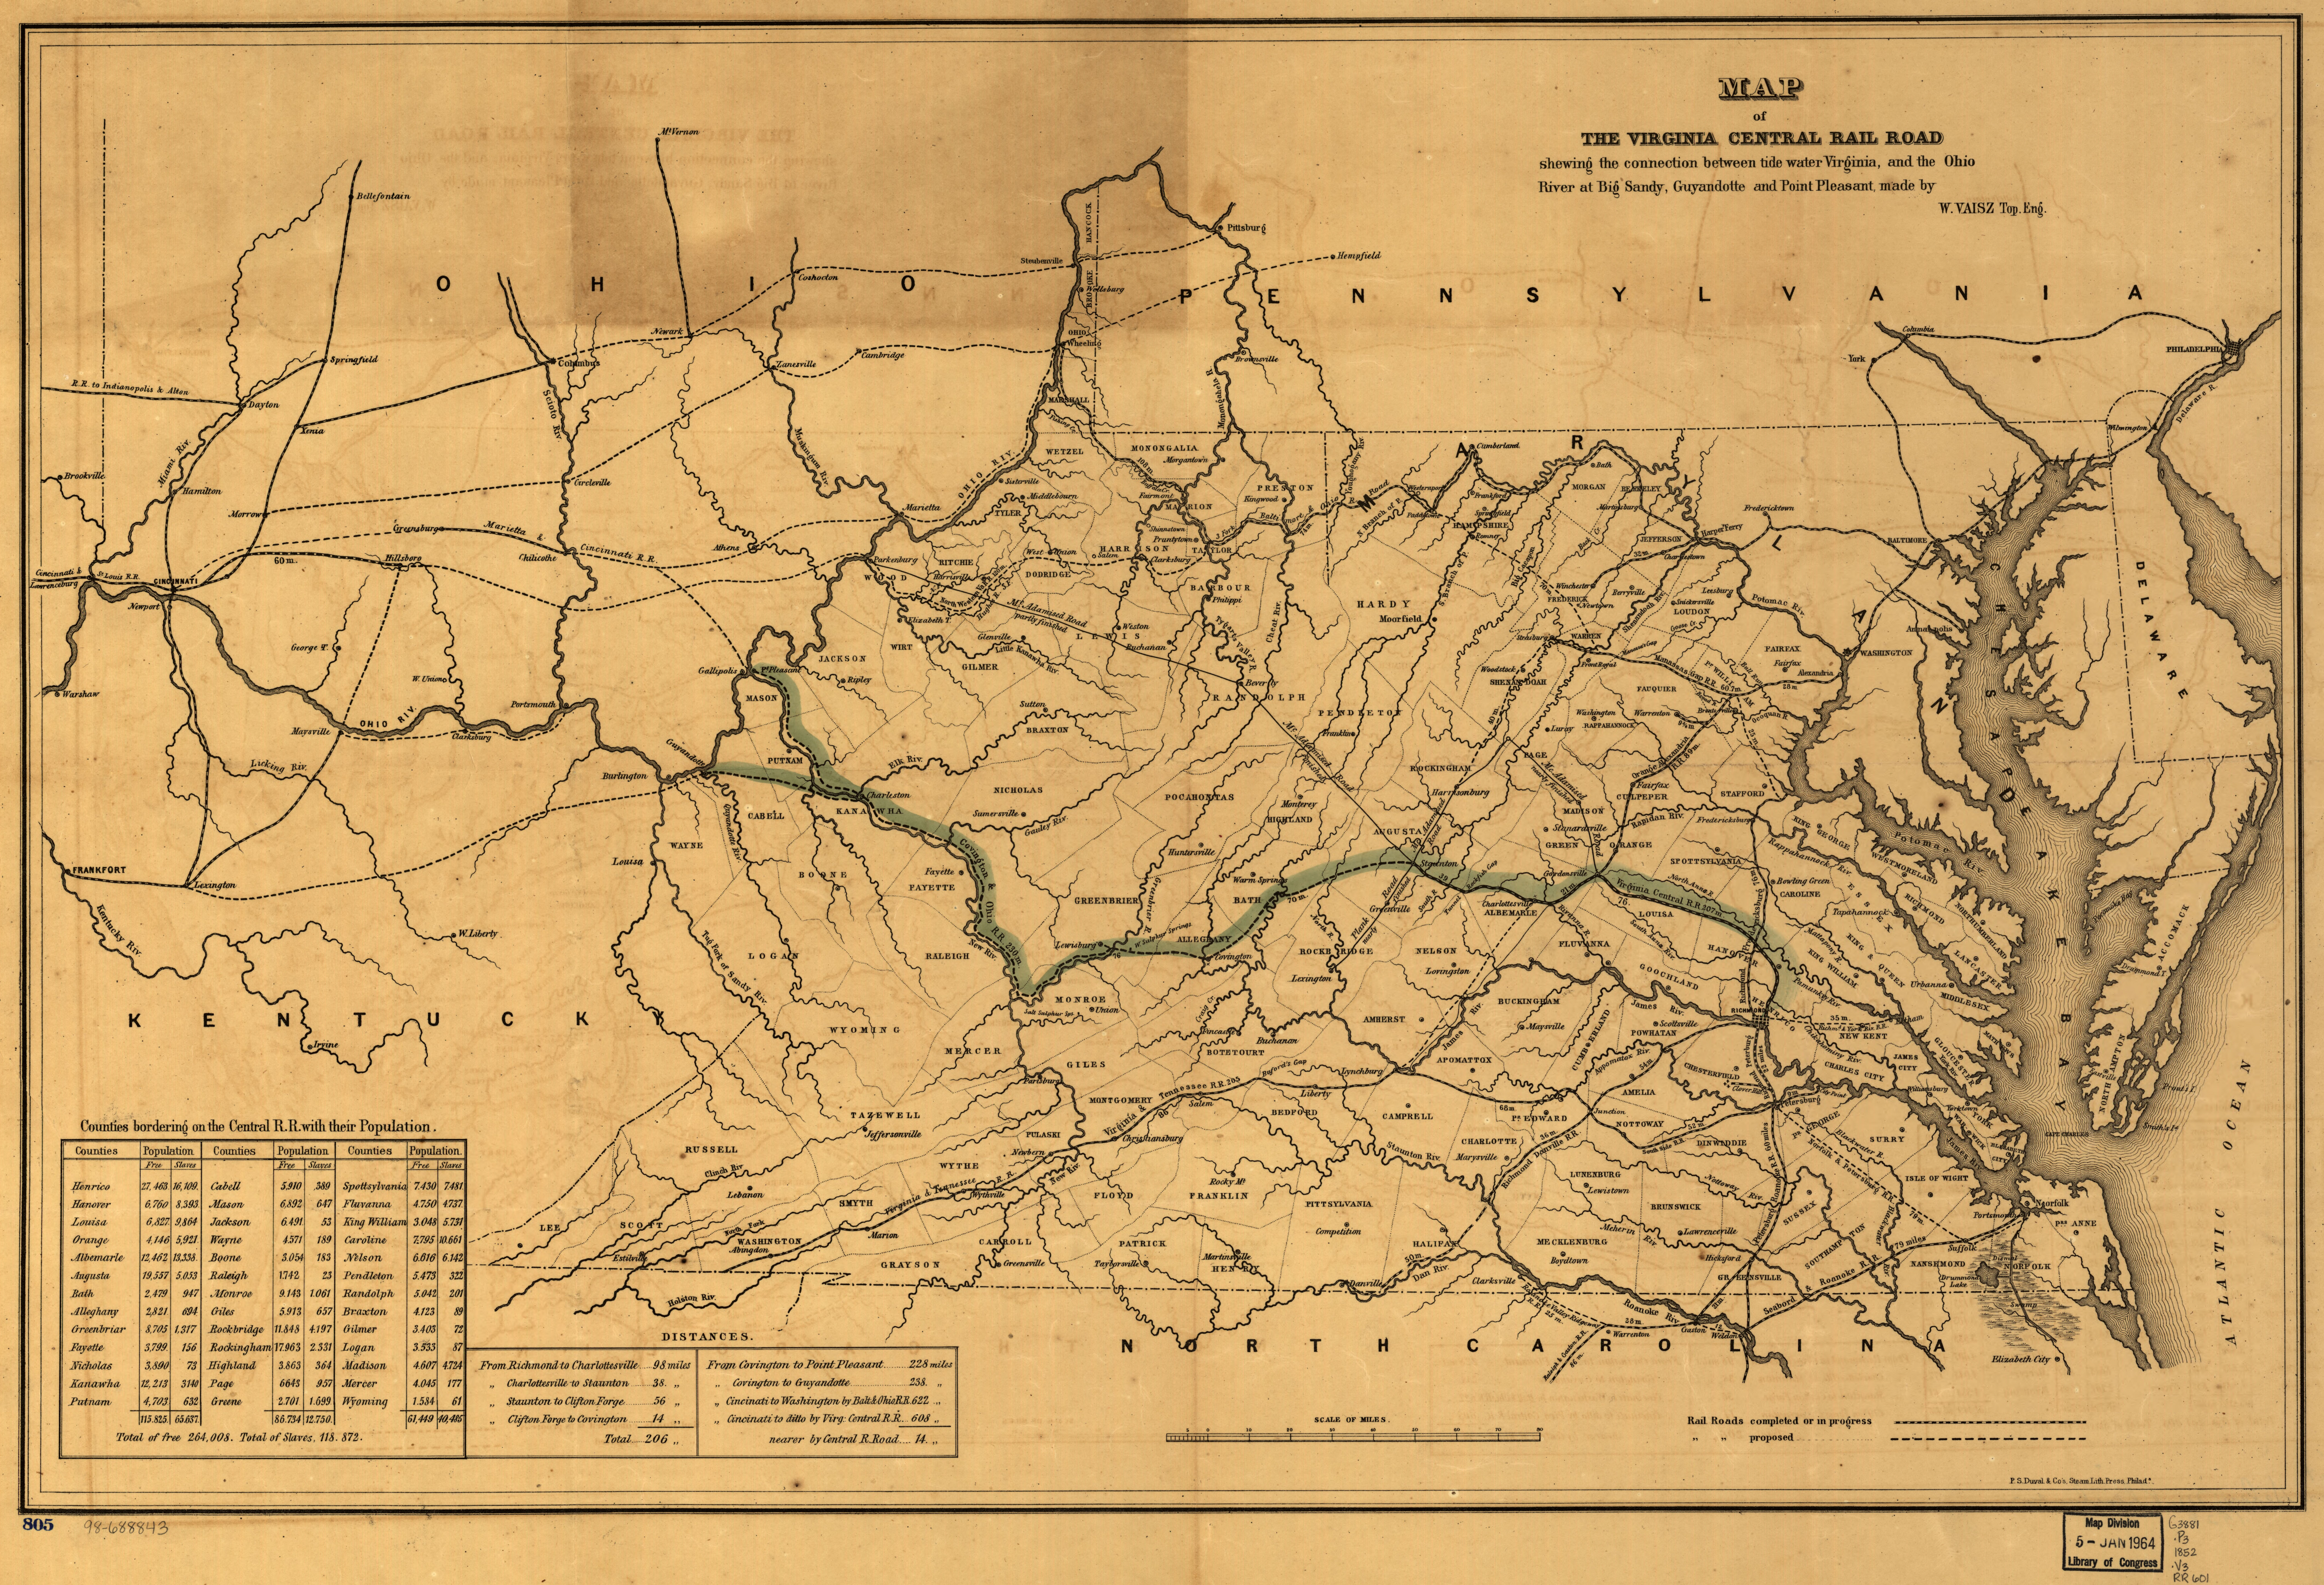 File1852 Map Of The Virginia Central Railroad And Planned